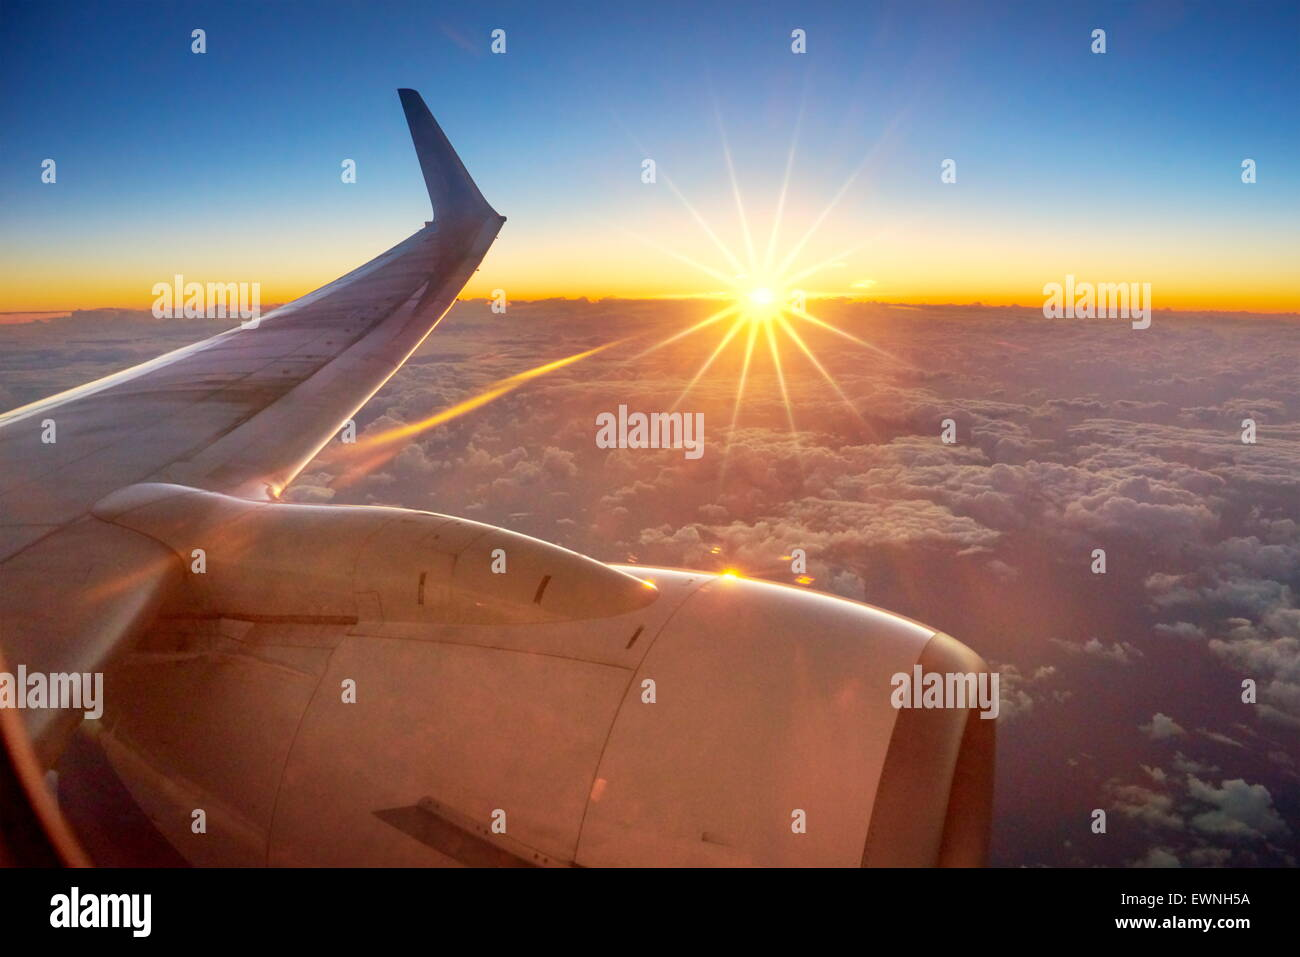 Sunset view from airplane window - Stock Image